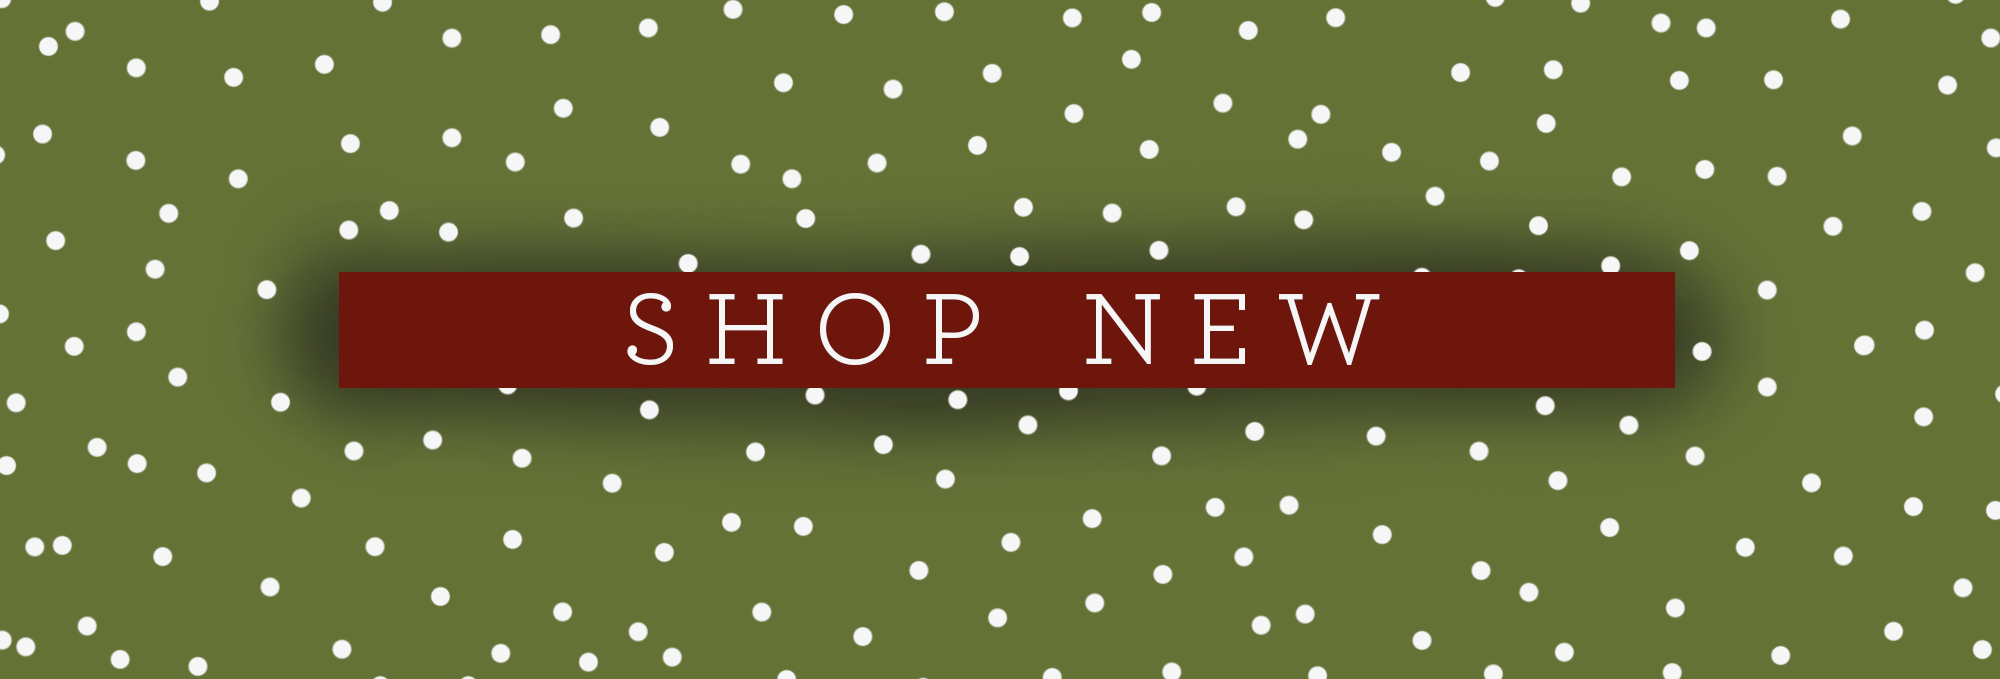 AC-SHOP-NEW-graphic-